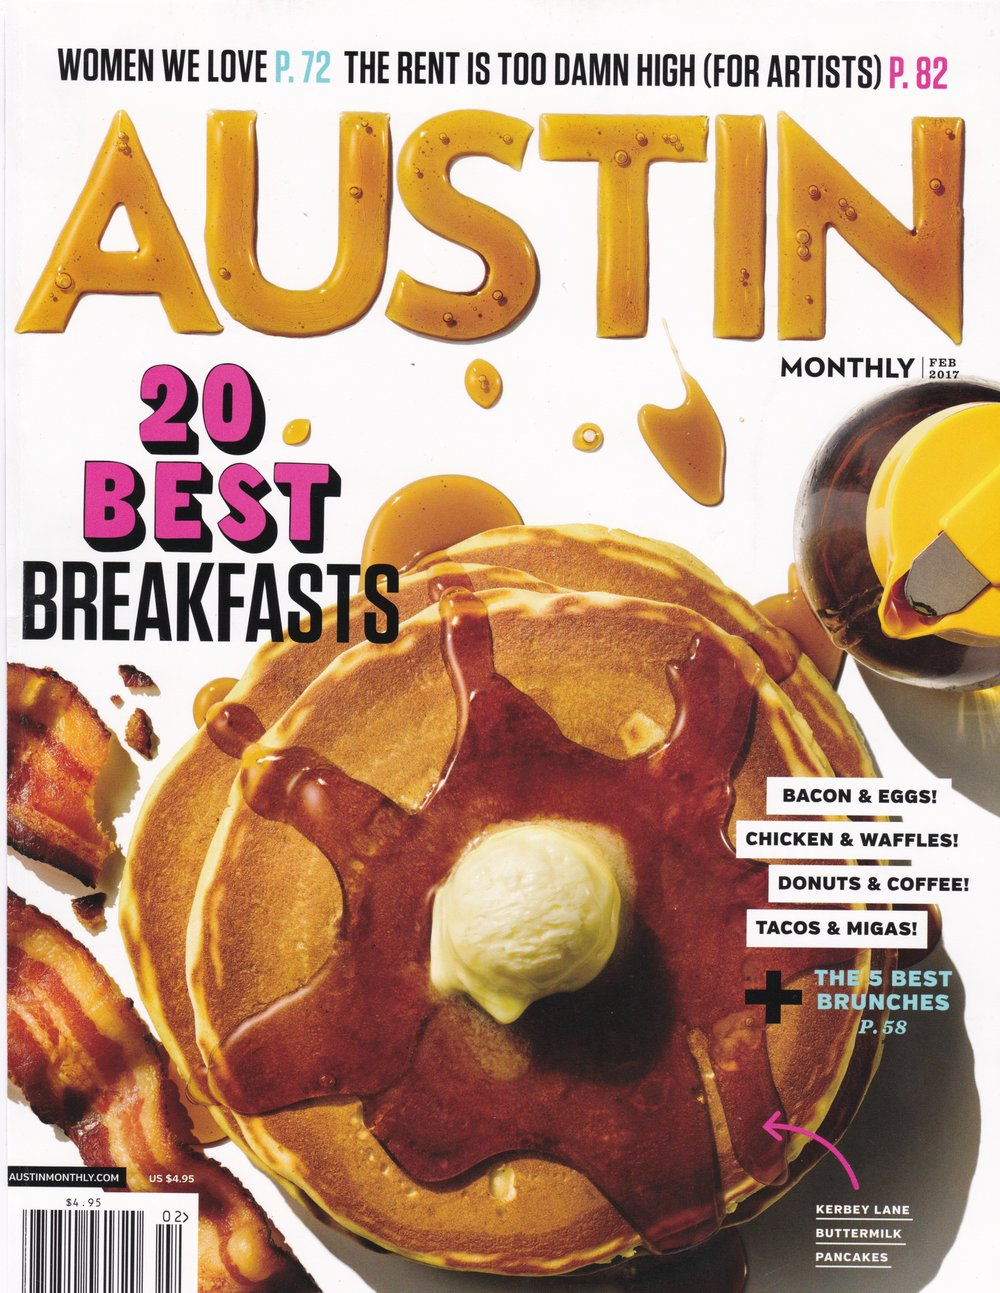 AustinMonthlyFeb2017Cover-1.jpeg